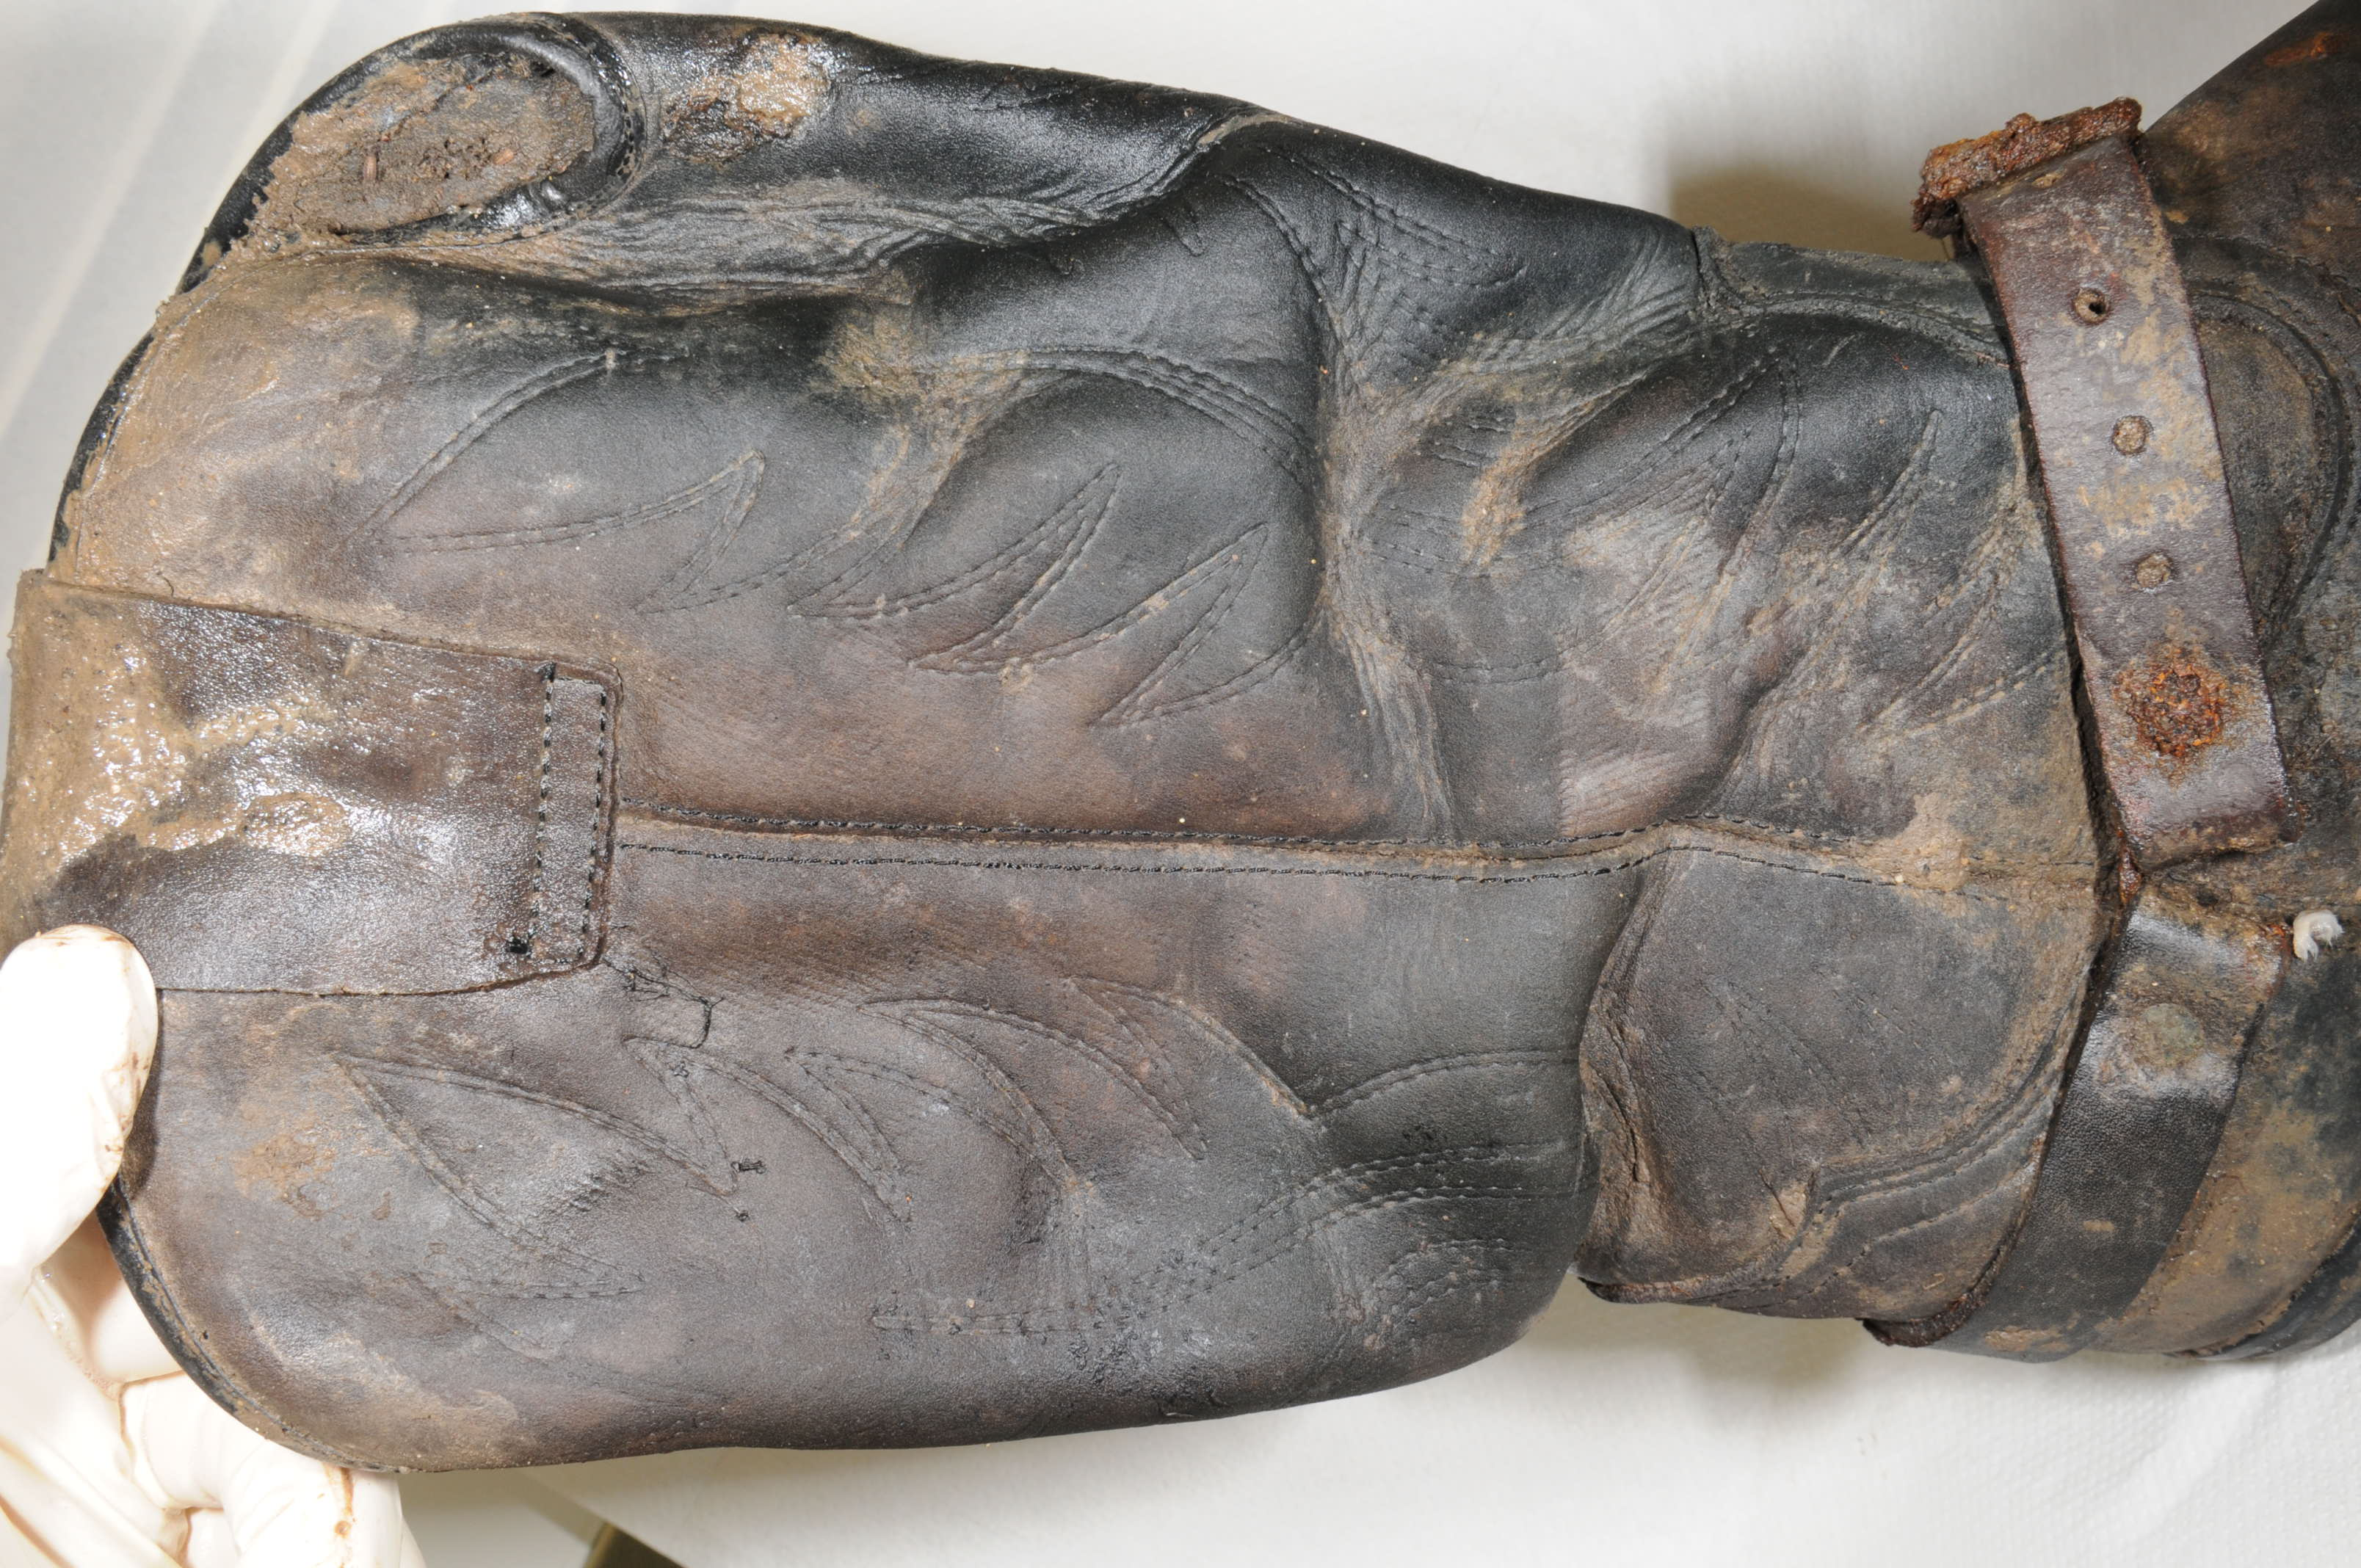 Essex Police has issued photographs of a 'distinctive pair of leather cowboy-style boots' found alongside the skeleton of a man at a scrapyard in St Osyth. (Essex Police/ PA)